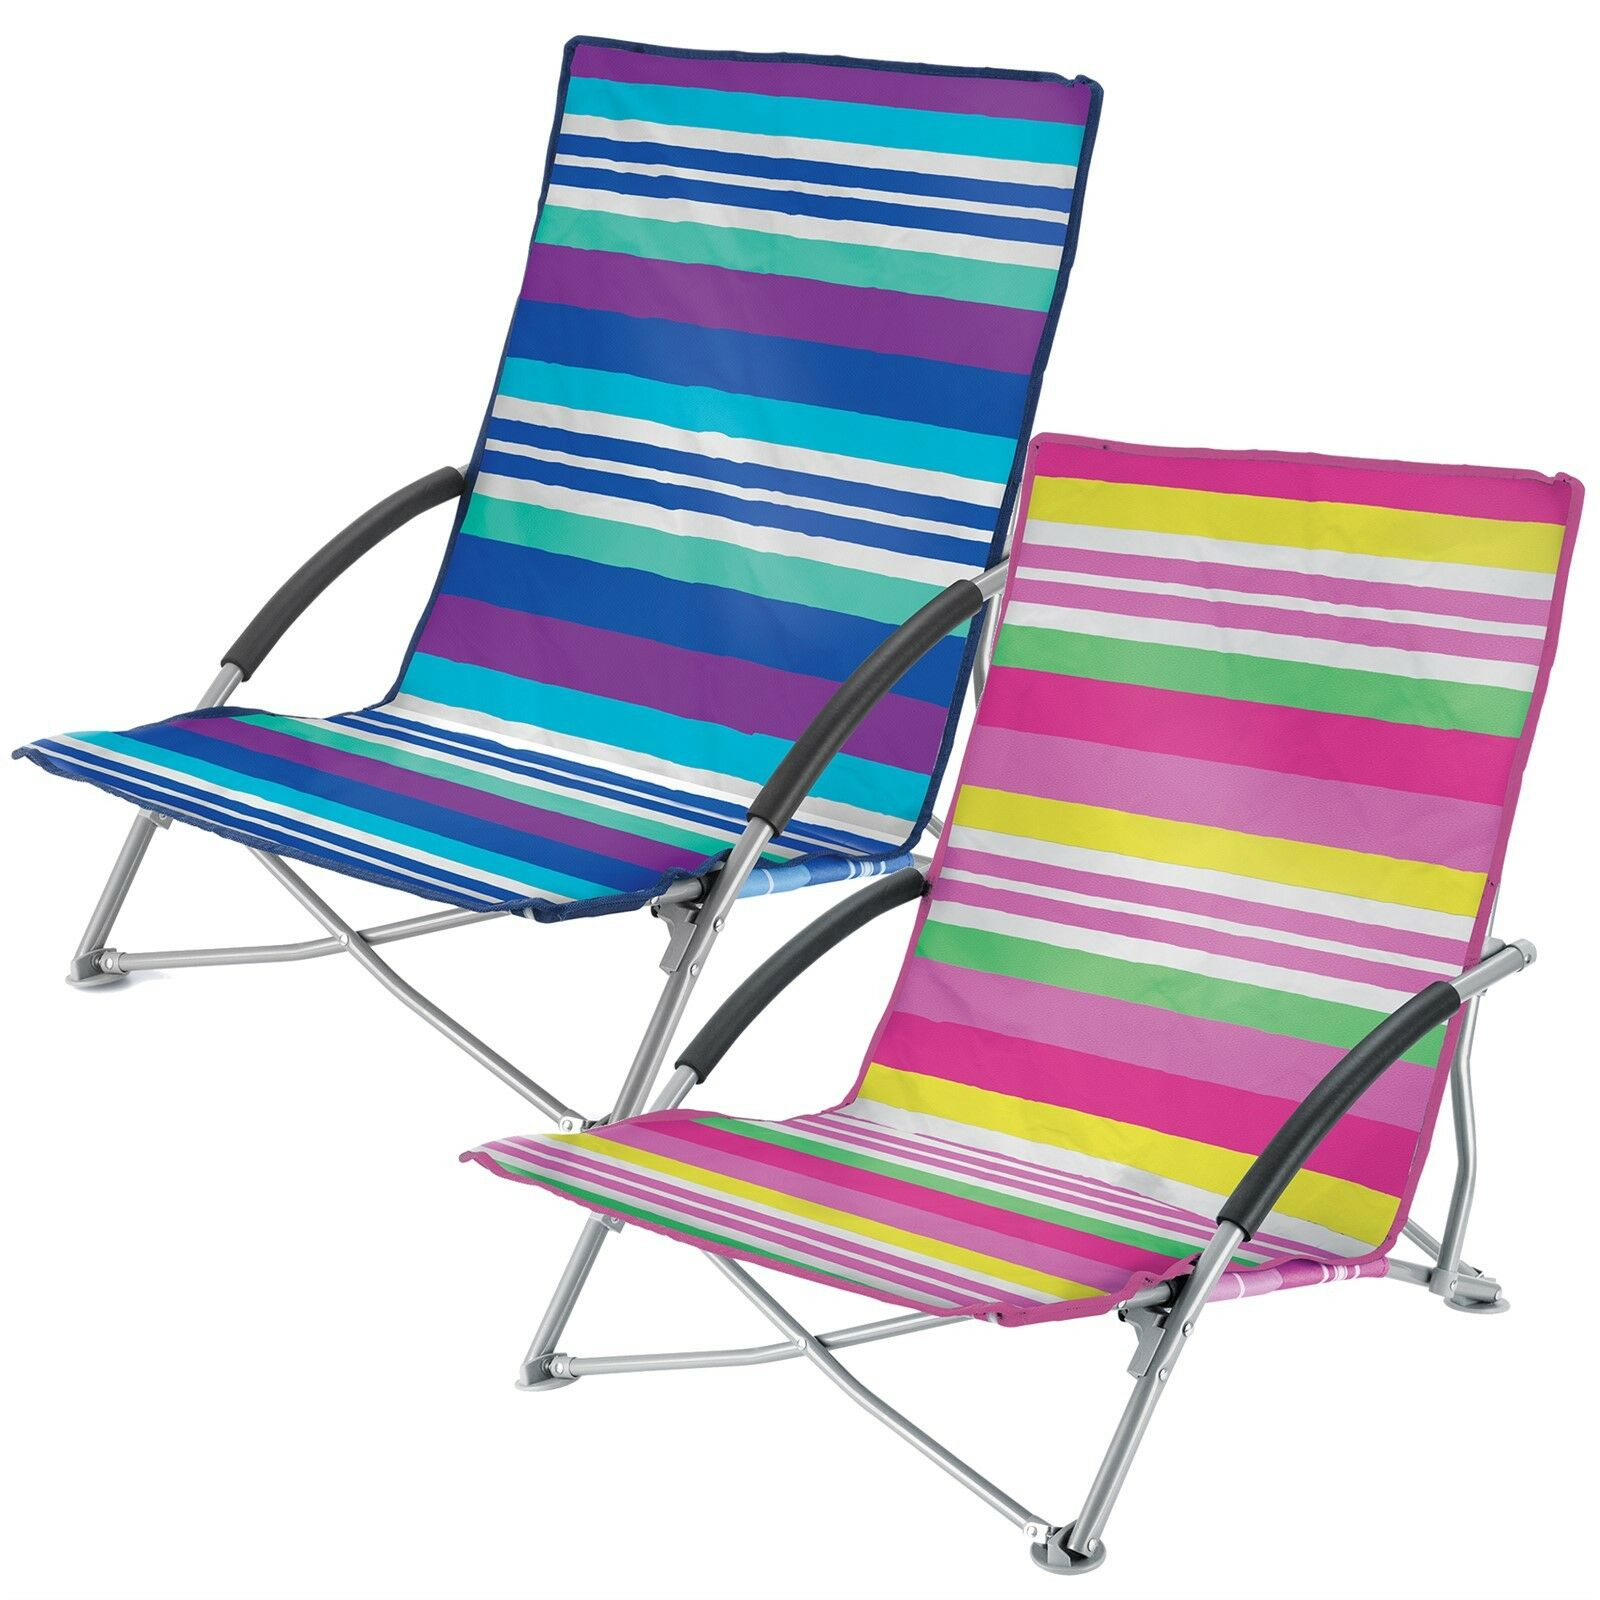 Yello bajo plegable playa sillas camping festival playa - Silla de playa plegable ...